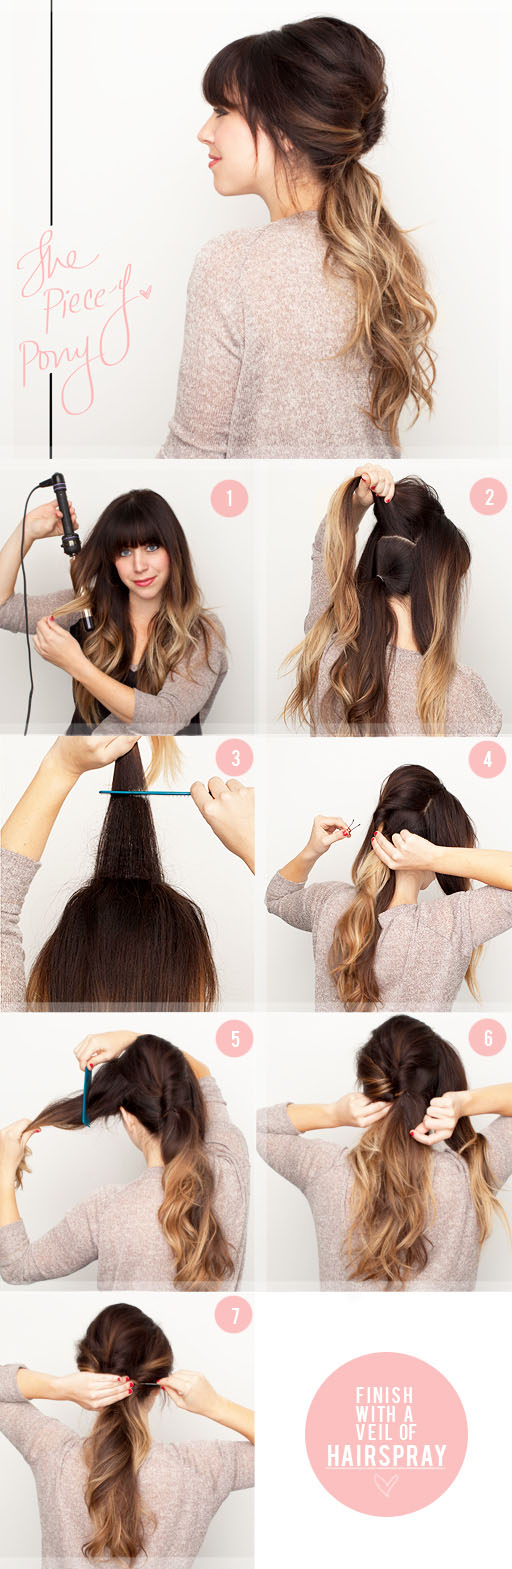 7 Fantastic Hairstyles Step By Step 6